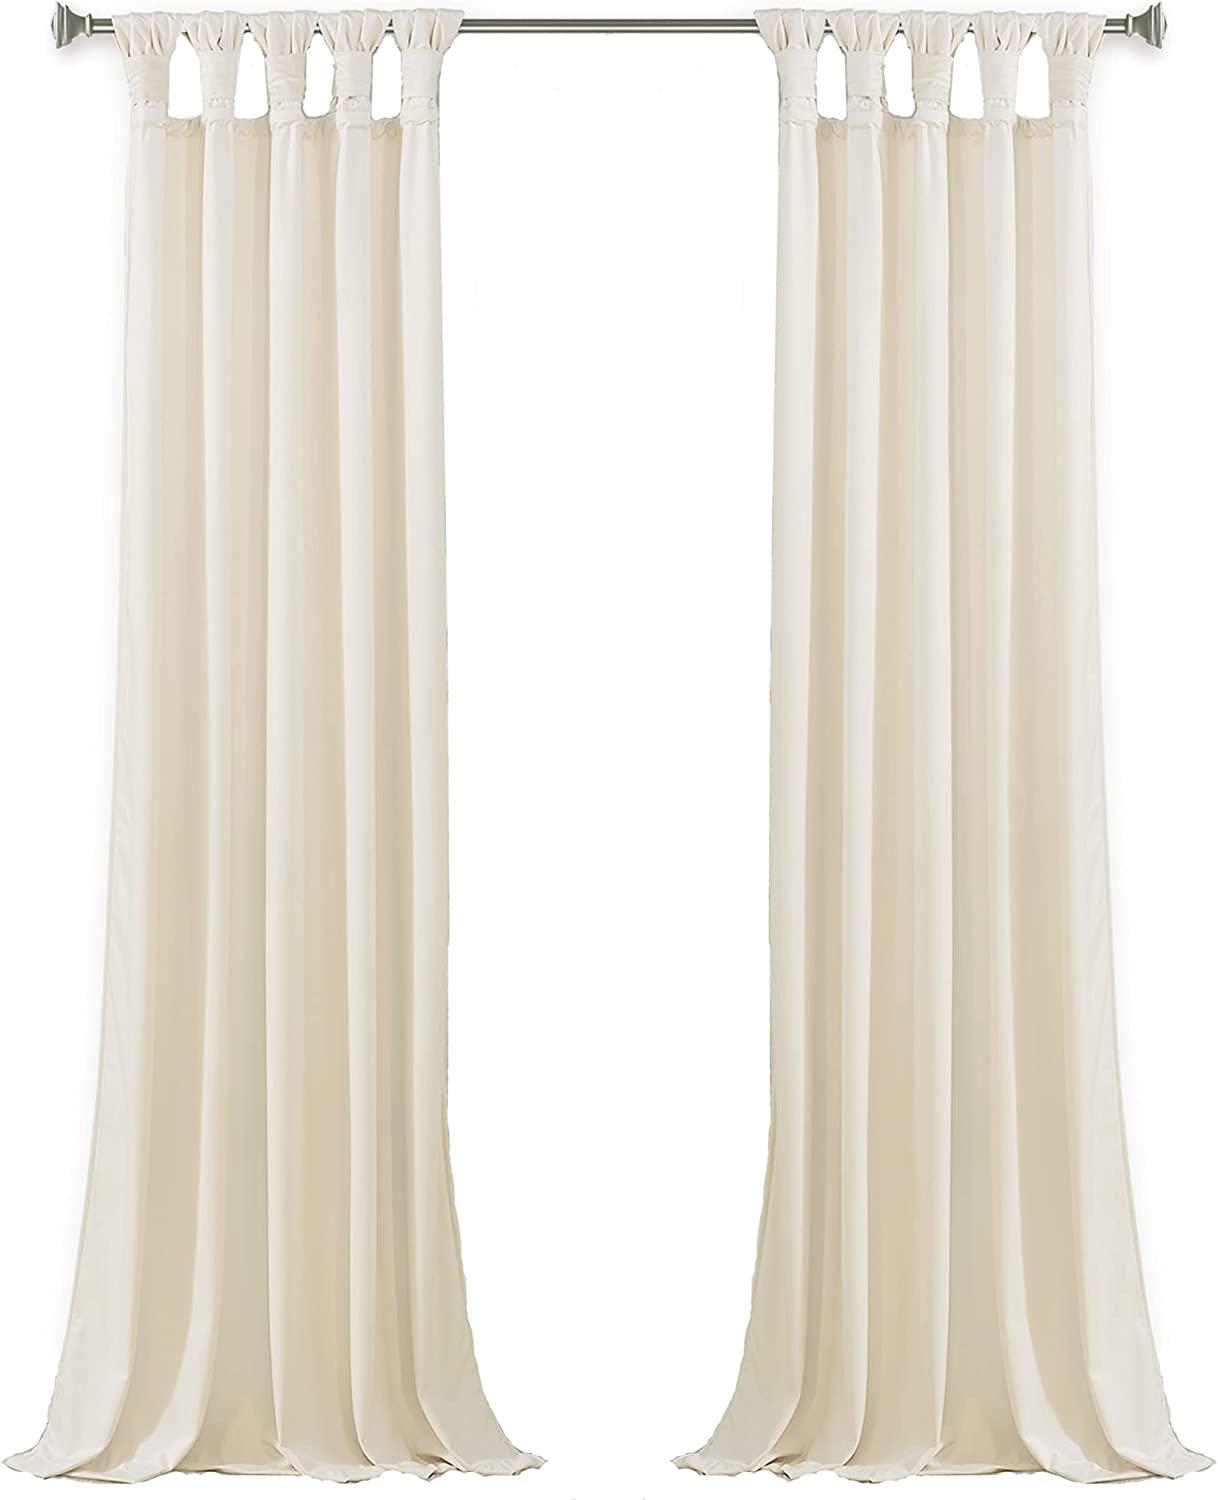 StangH Cream White Velvet Curtains Outstanding Cu Easy-to-use Luxury Decor Home -